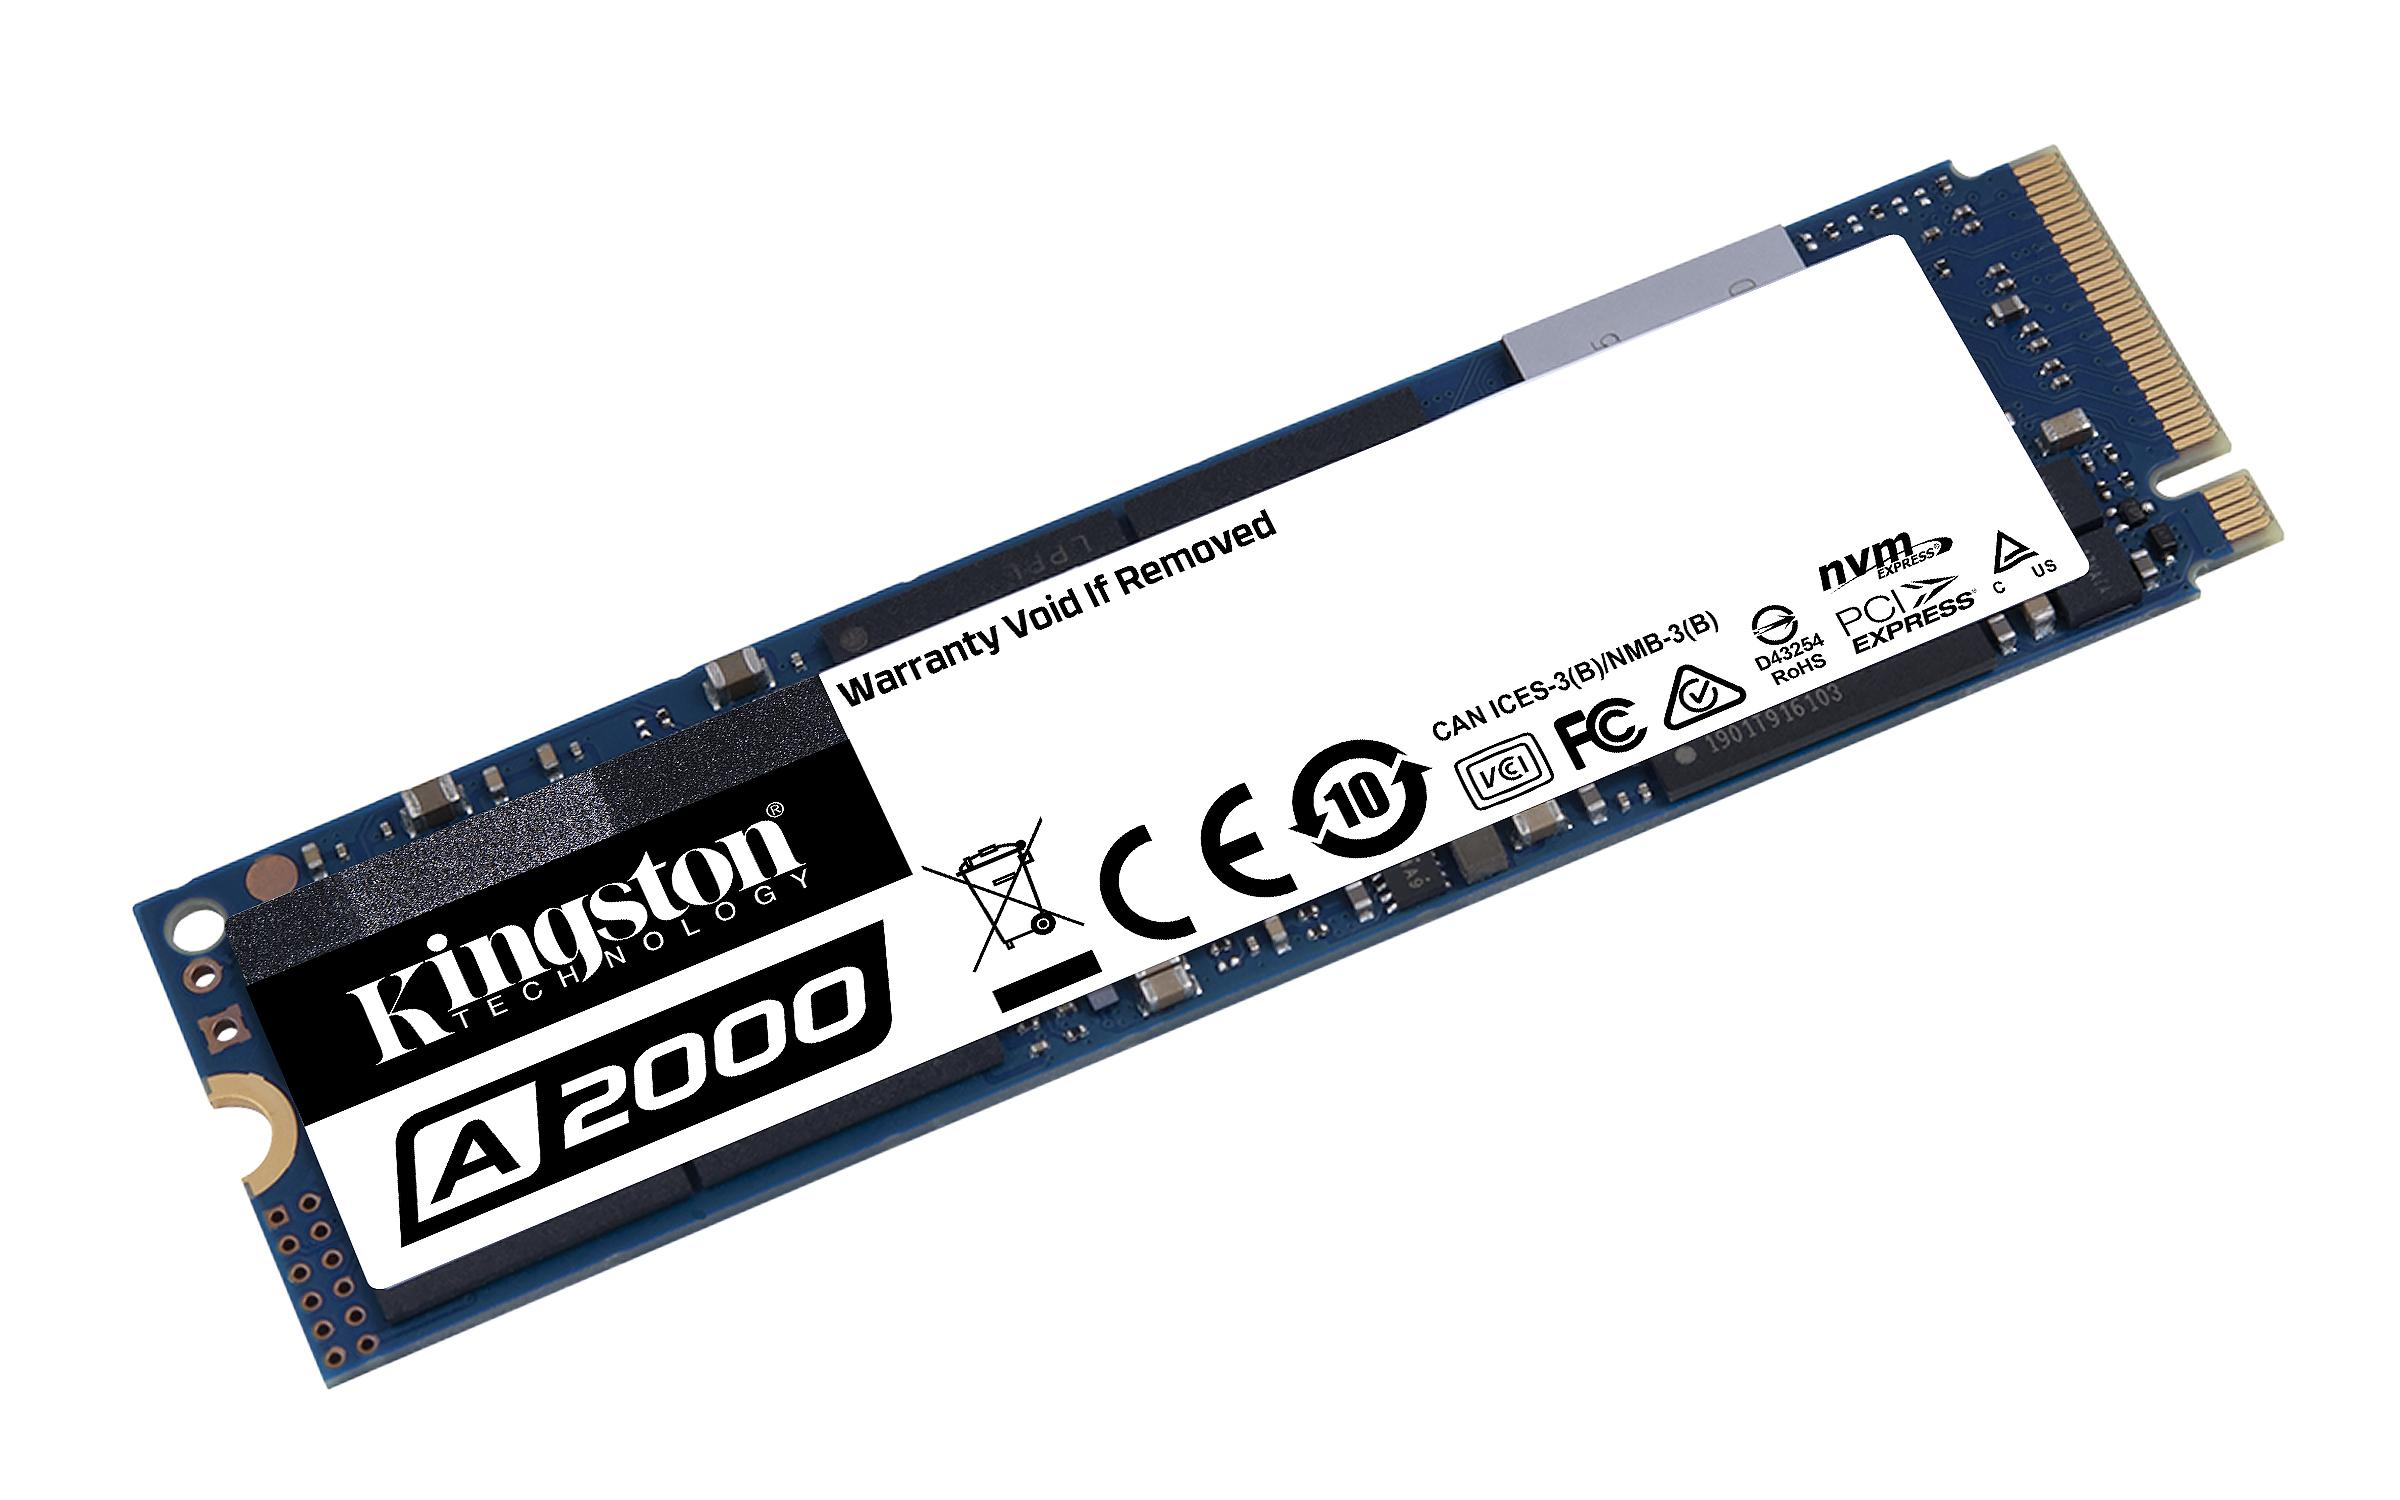 Solid State Drive (SSD) KINGSTON A2000 M.2-2280 PCIe Nvme 500GB-3